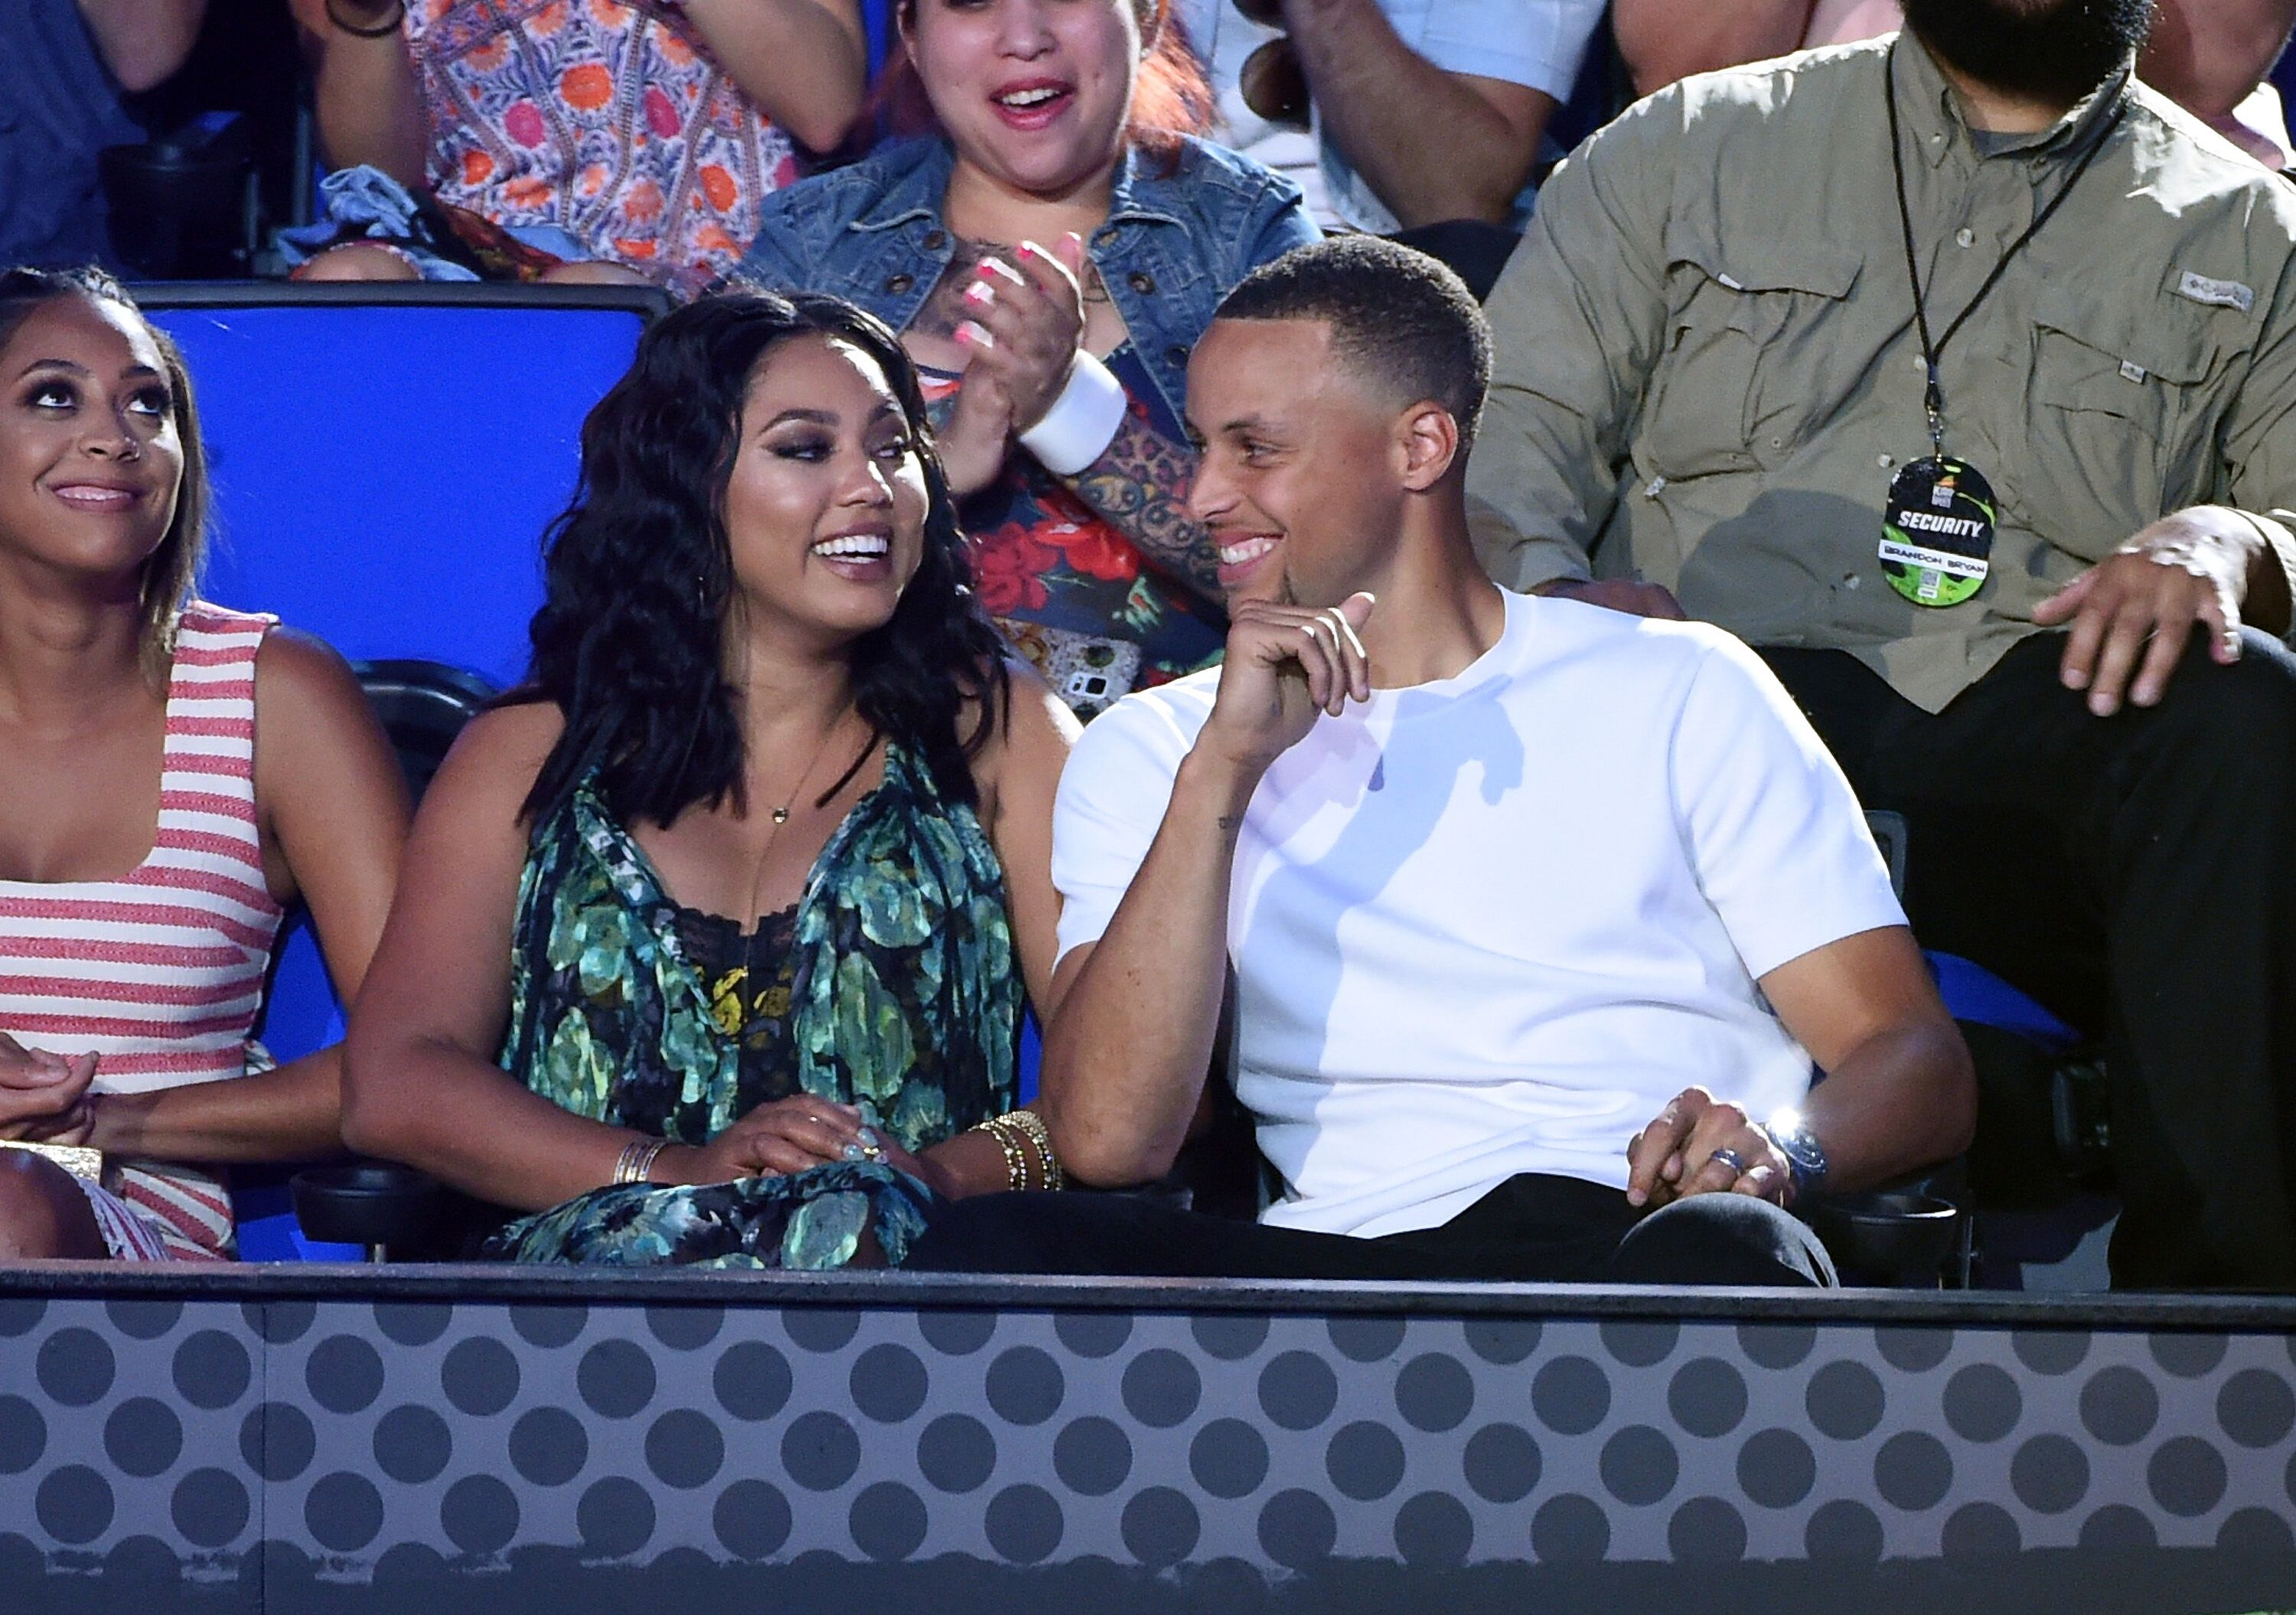 NBA player Stephen Curry and Ayesha Curry attend the Nickelodeon Kids' Choice Sports Awards 2016 at UCLA's Pauley Pavilion on July 14, 2016 | Photo: Getty Images